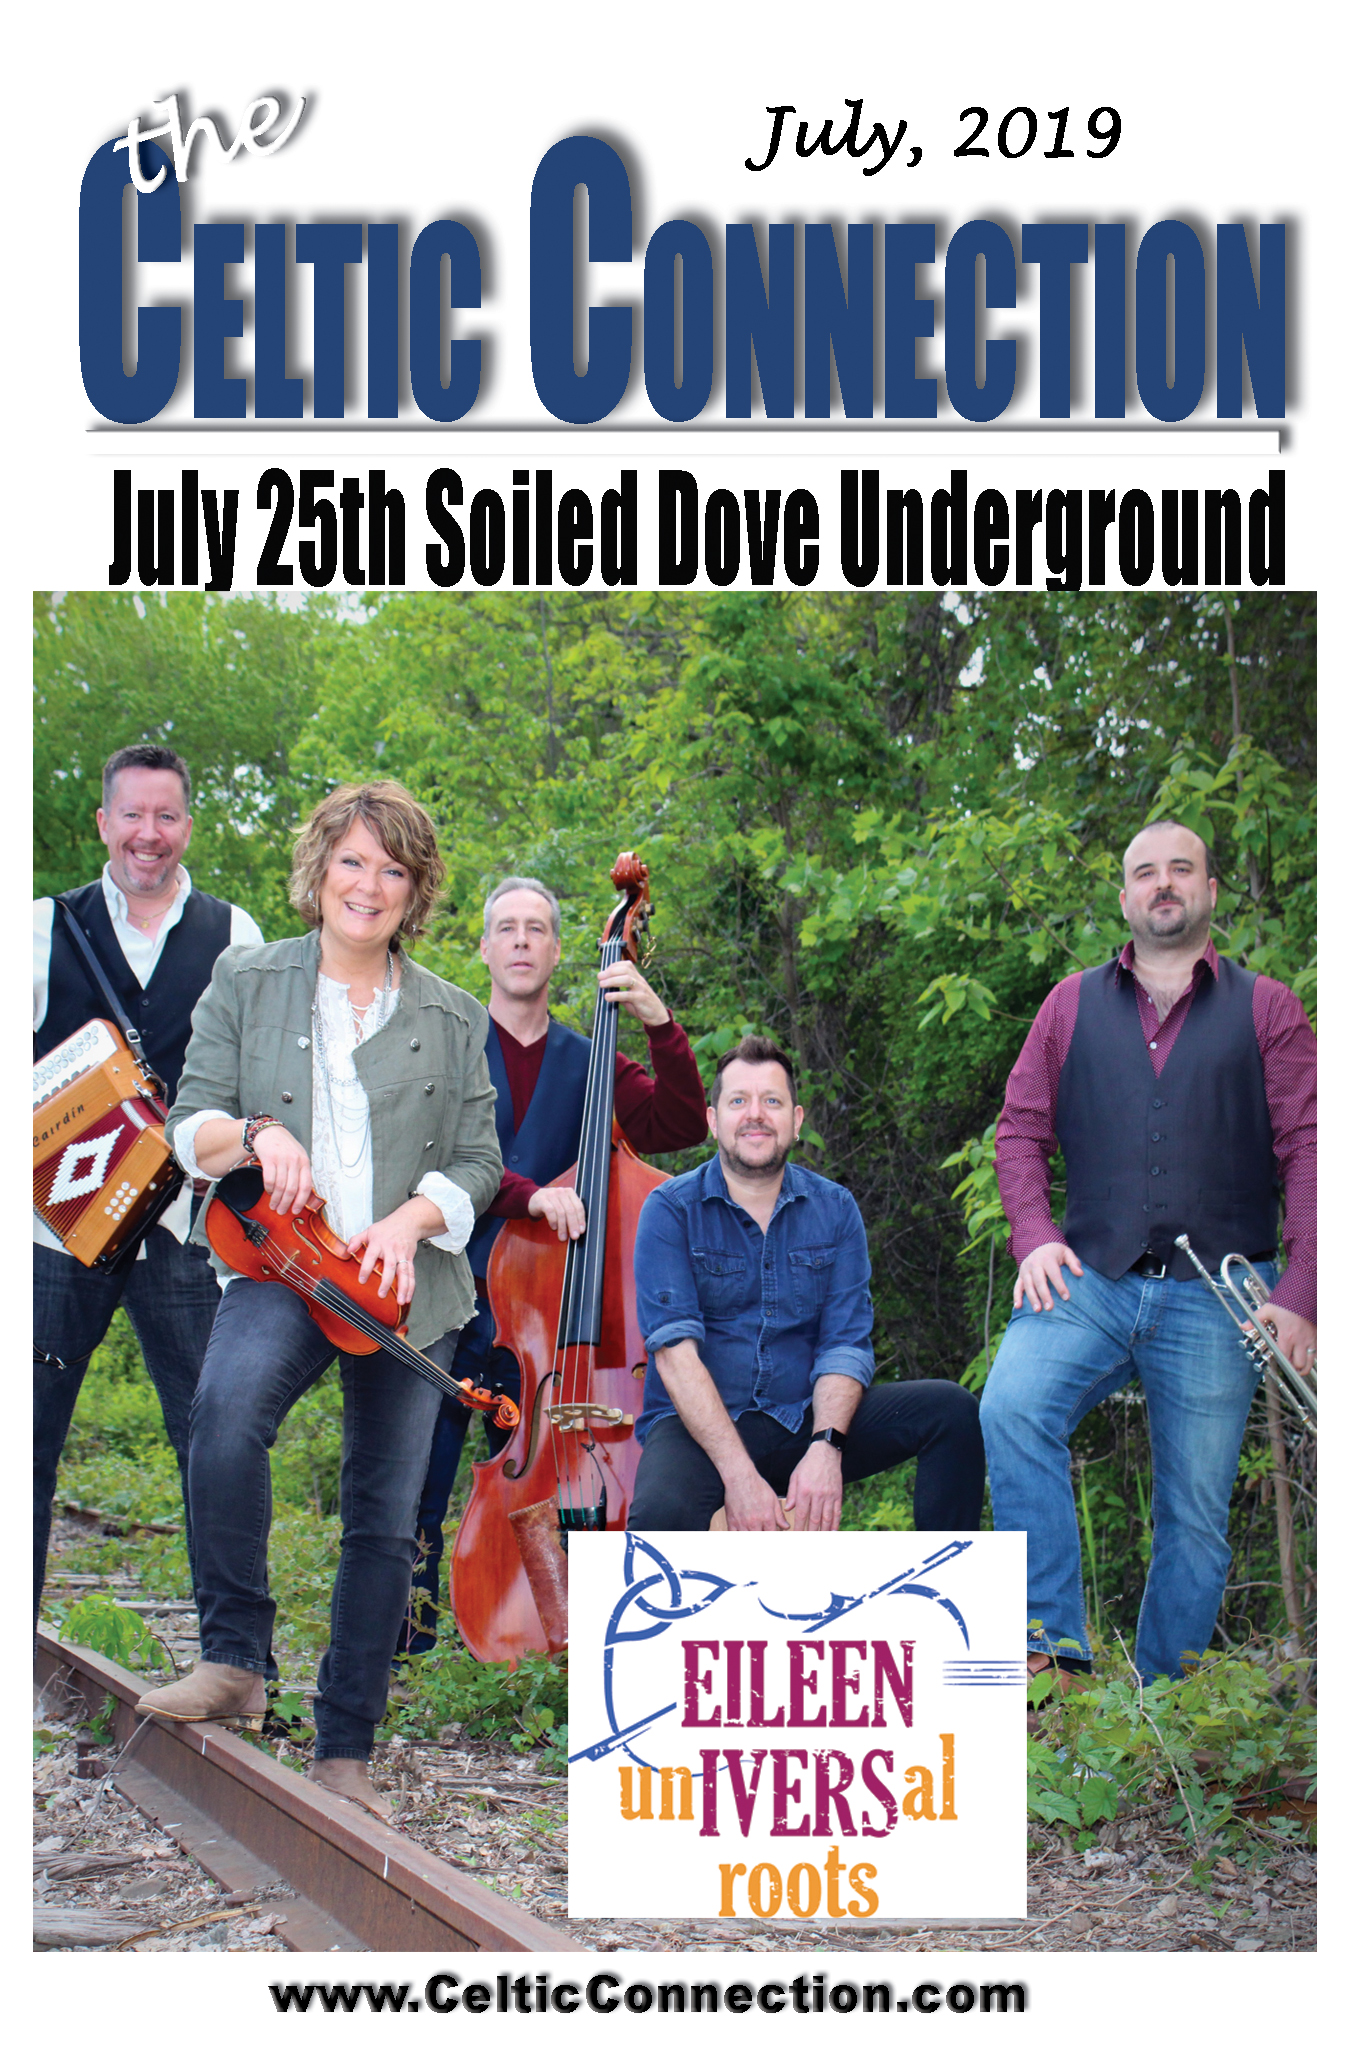 Eileen Ivers Universal Roots Return to Denver July 25